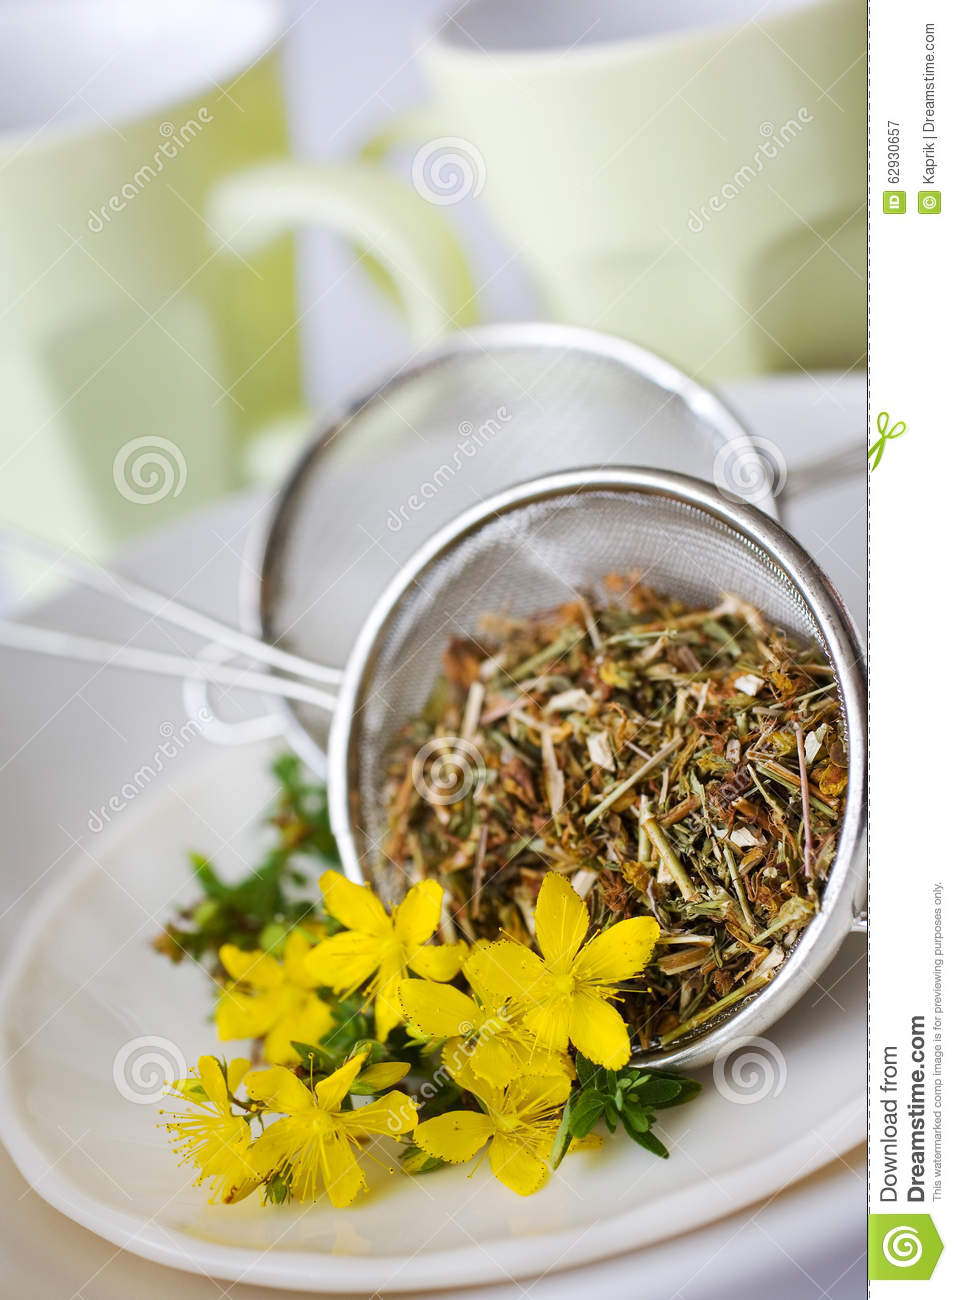 common-st-john-s-wort-tea-hypericum-perforatum-natural-antidepressants-healing-yellow-flowers-leaves-62930657.jpg